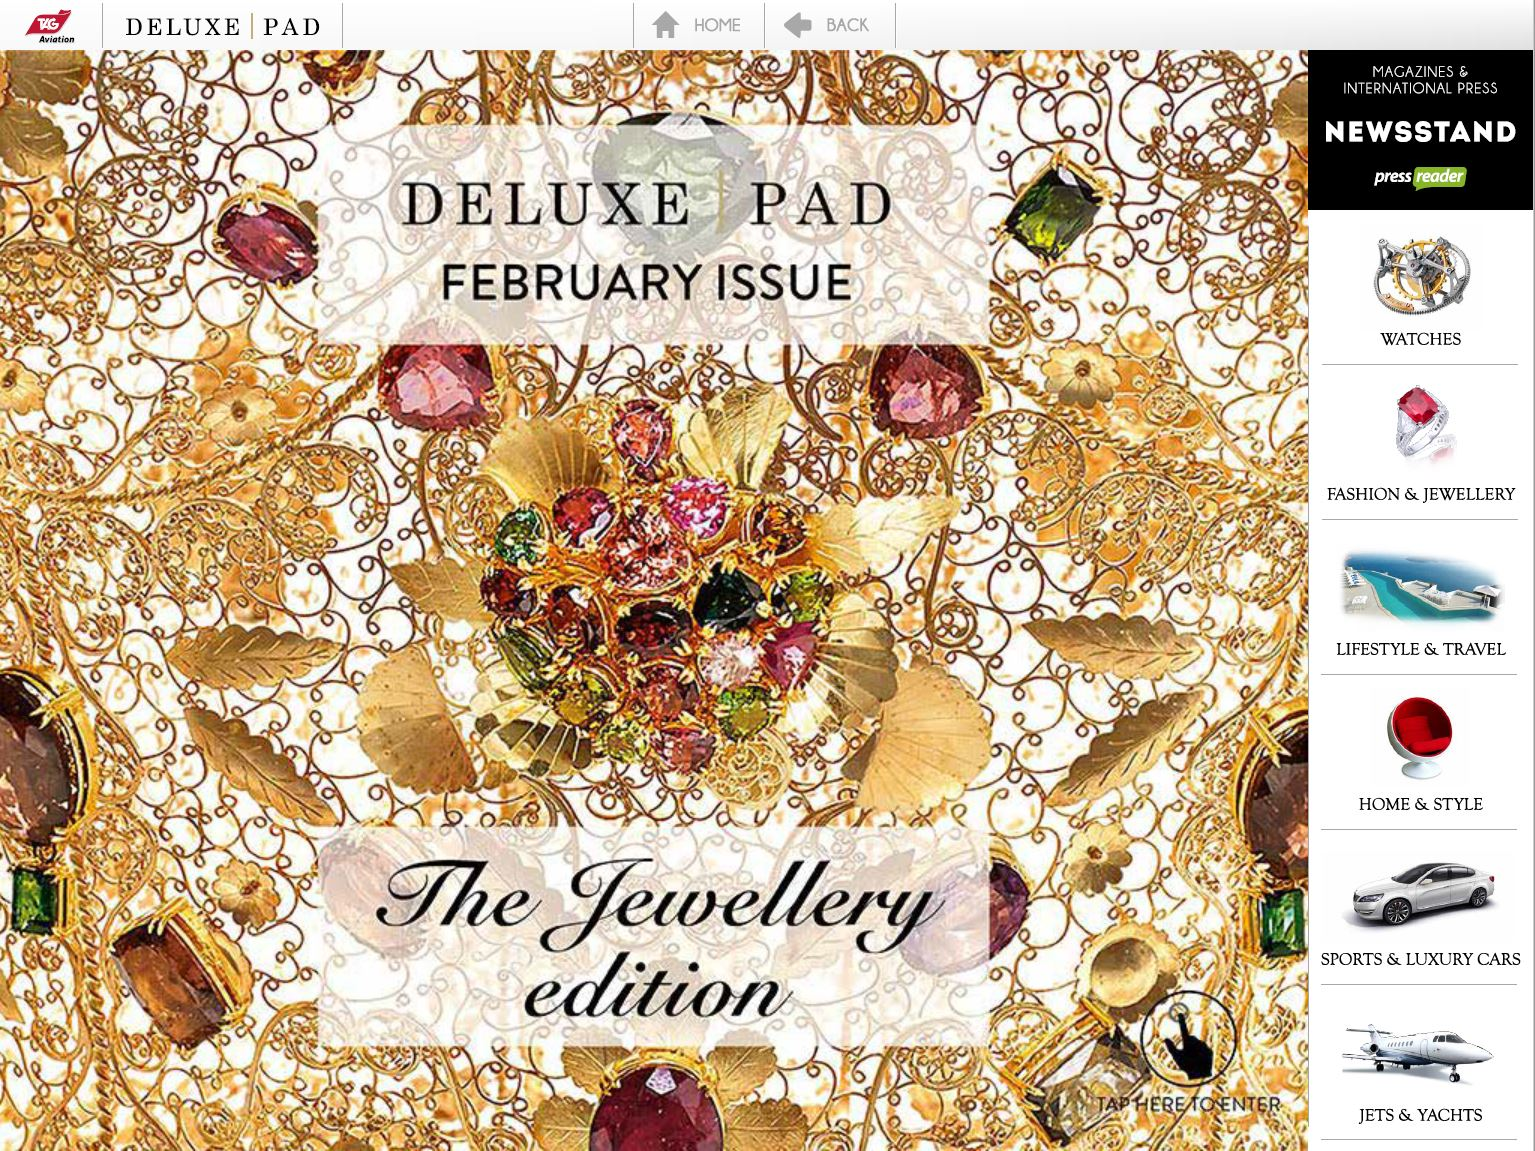 Diamond Jewellery Deluxe Pad The Jewellery Edition